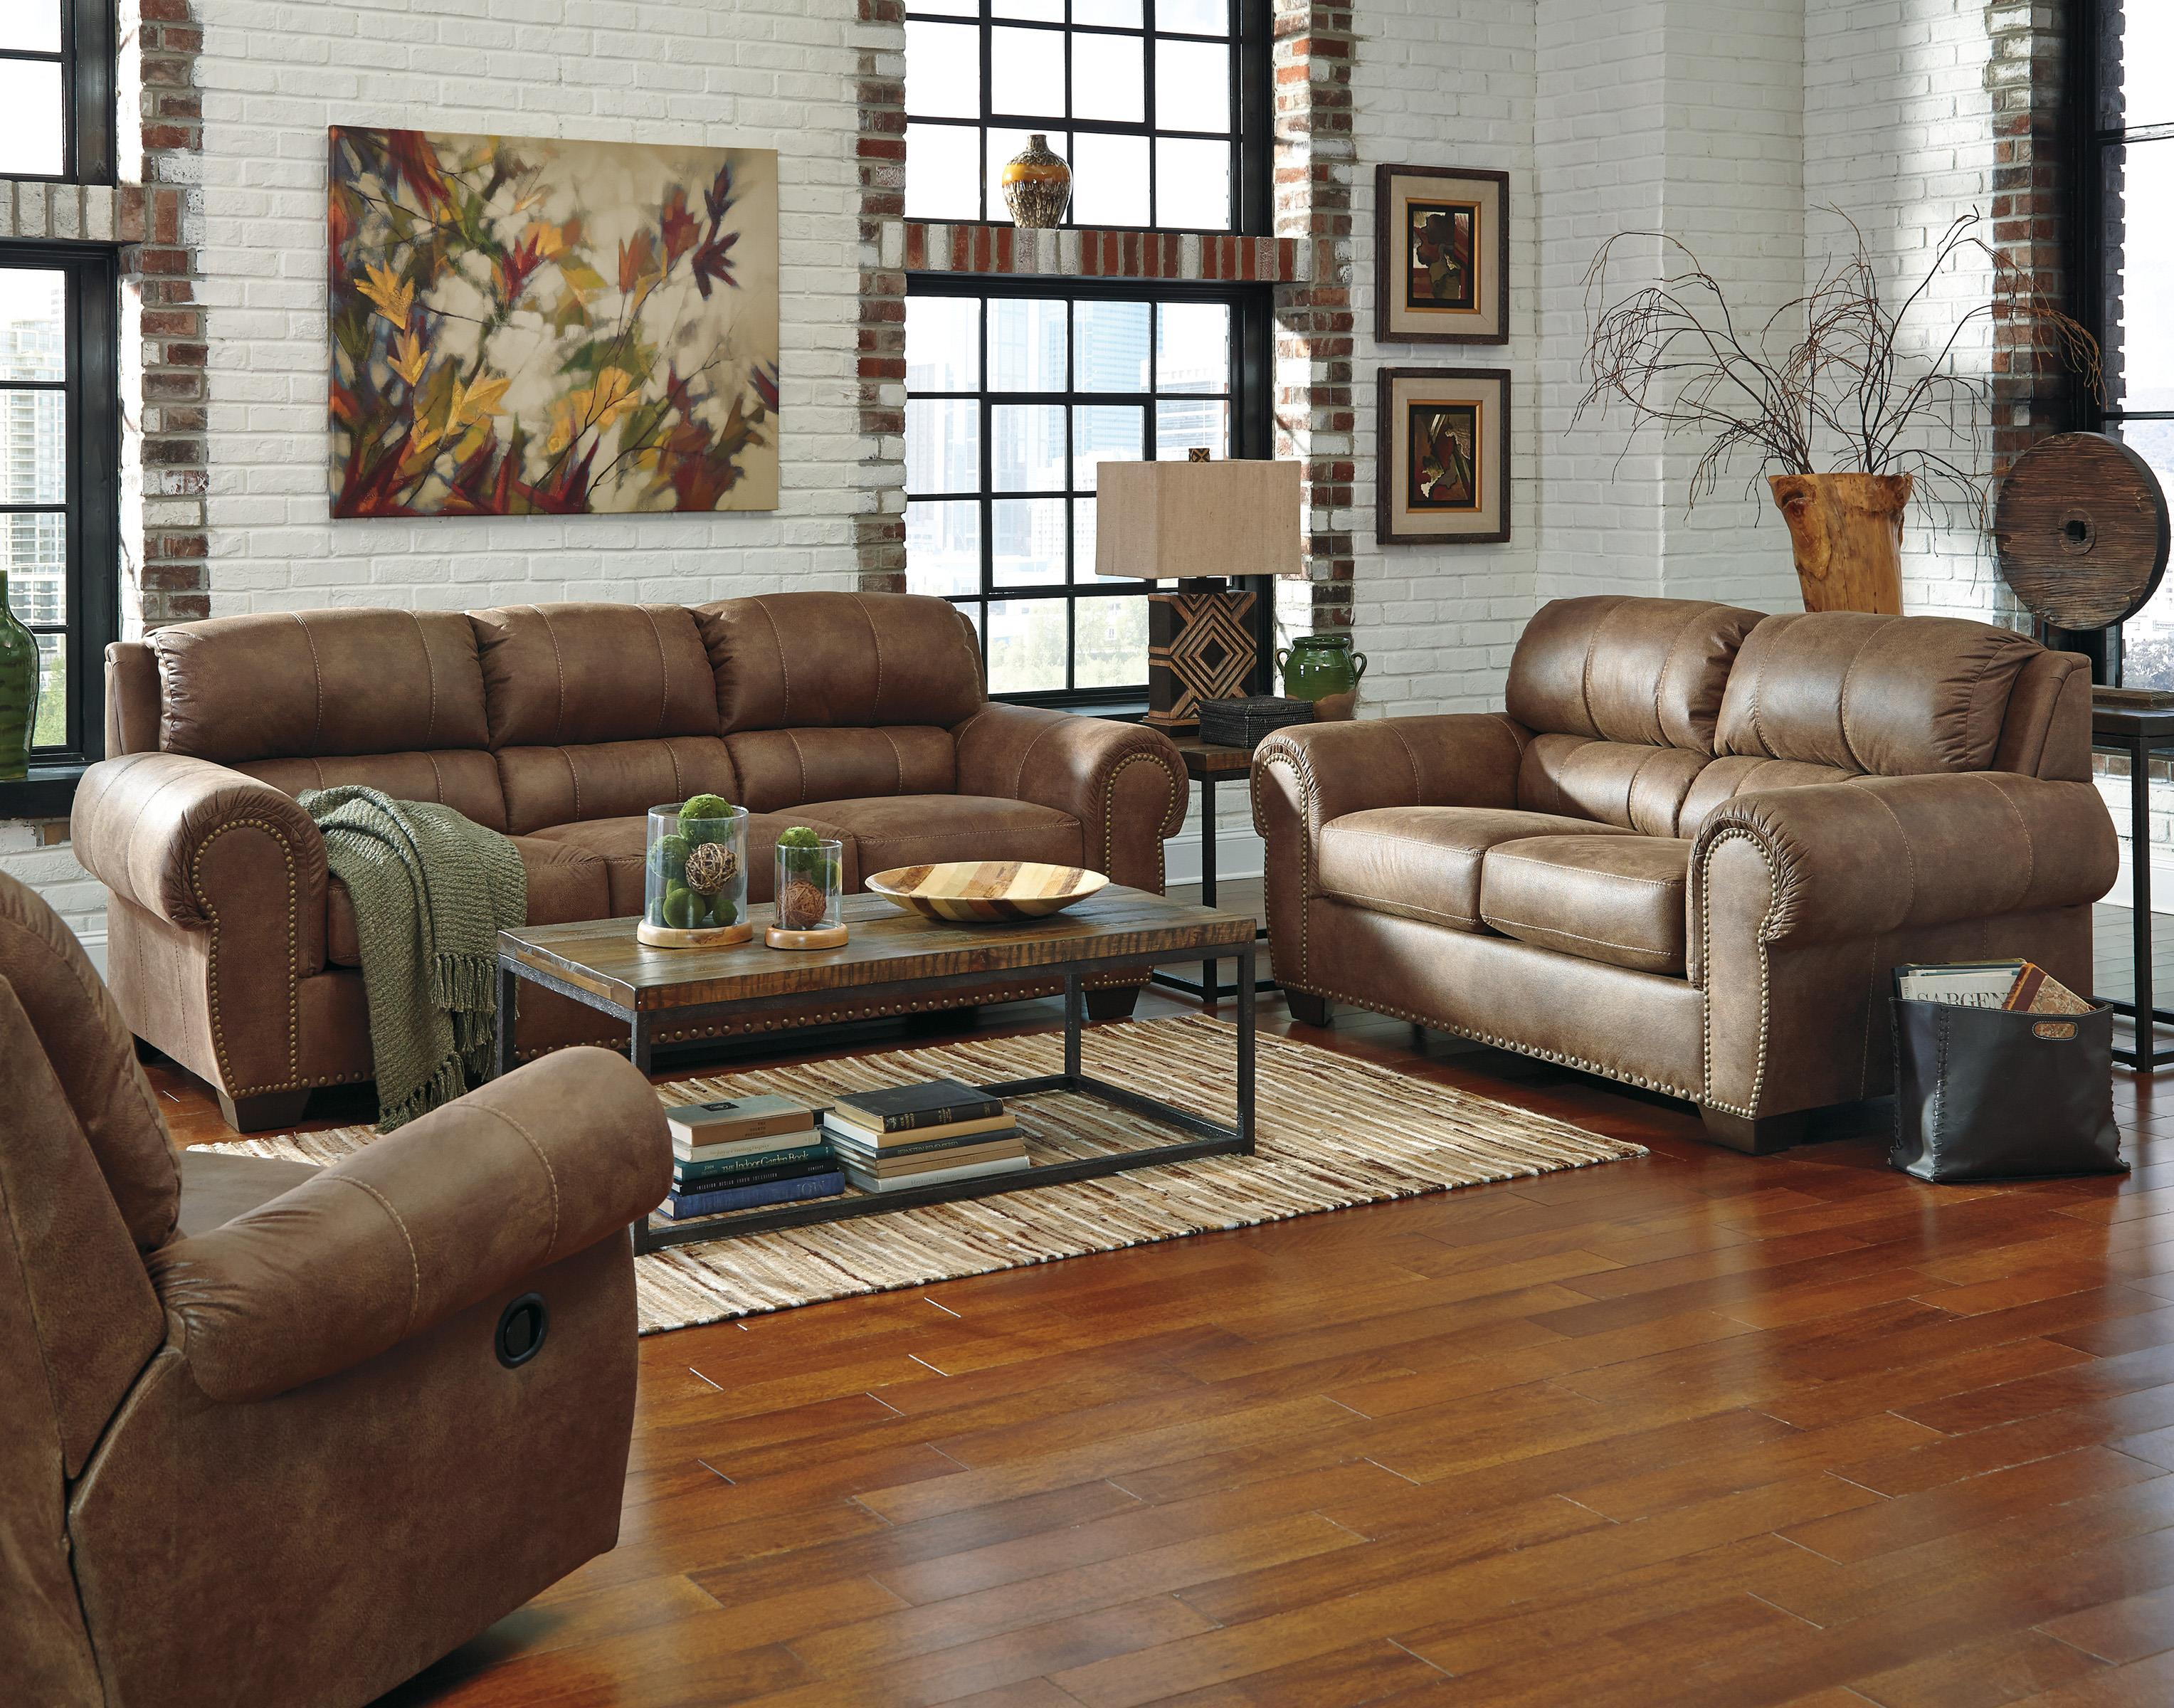 Transitional Faux Leather Sofa with Rolled Arms & Nailhead Trim by